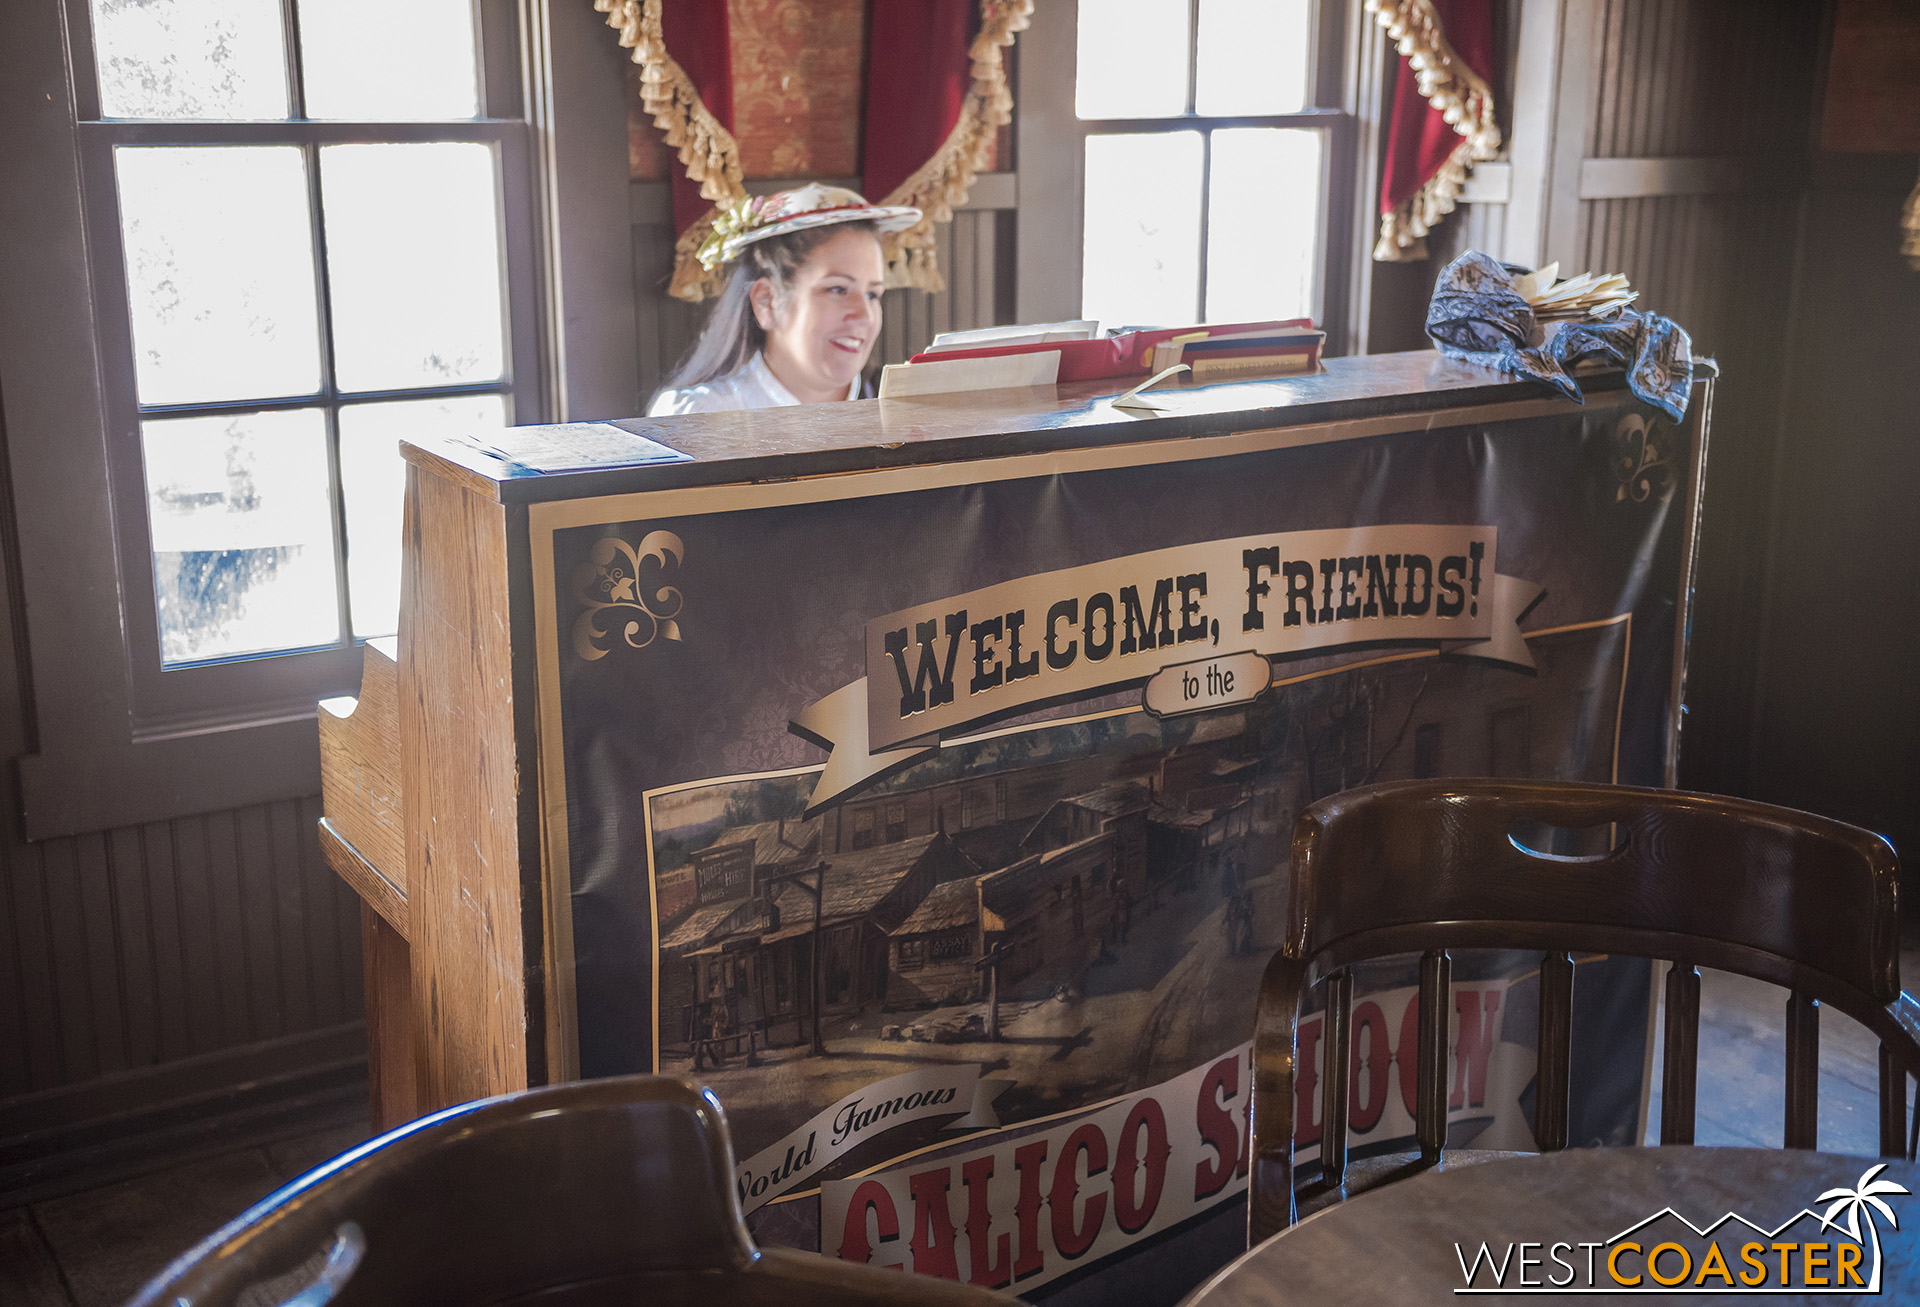 The Calico Saloon isn't hosting shows this summer, but a pianist has taken up residence for entertainment, and the Saloon is still a watering hole for thirsty travelers.